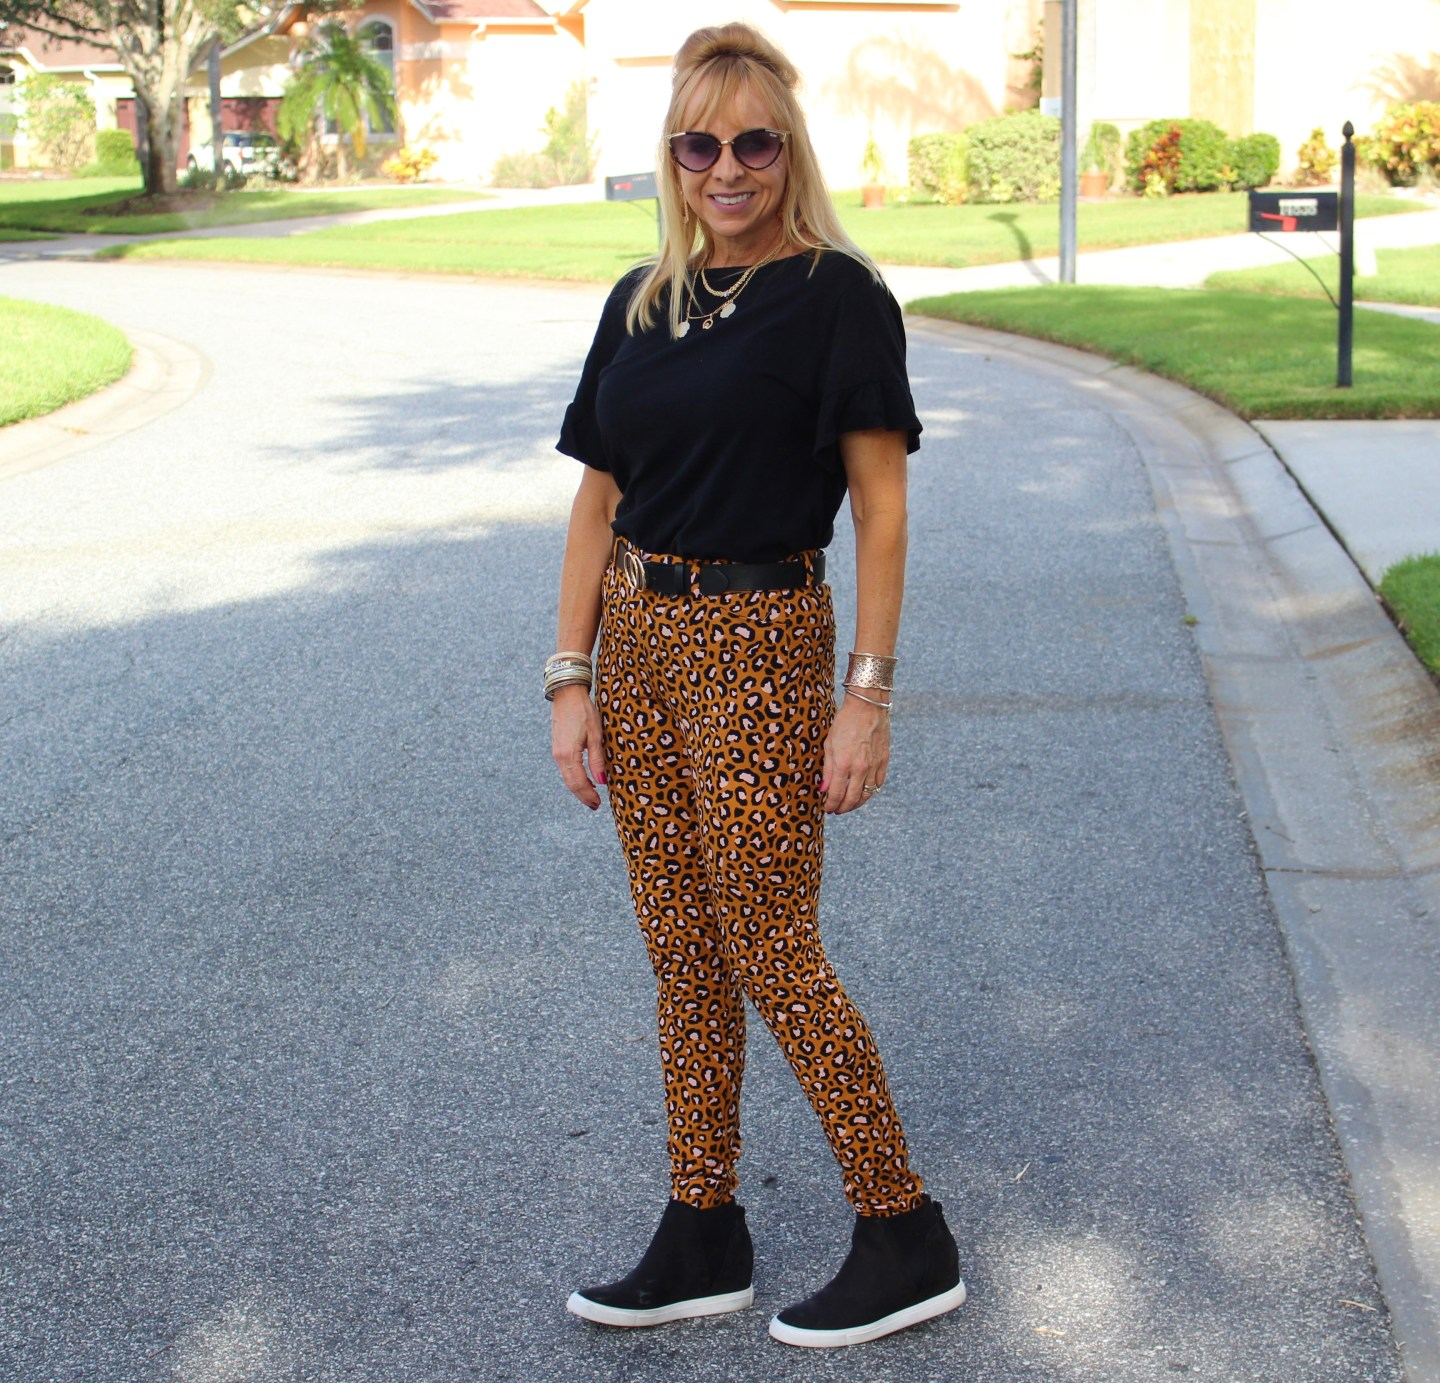 Wedge Sneakers + Leopard Pixie Pants